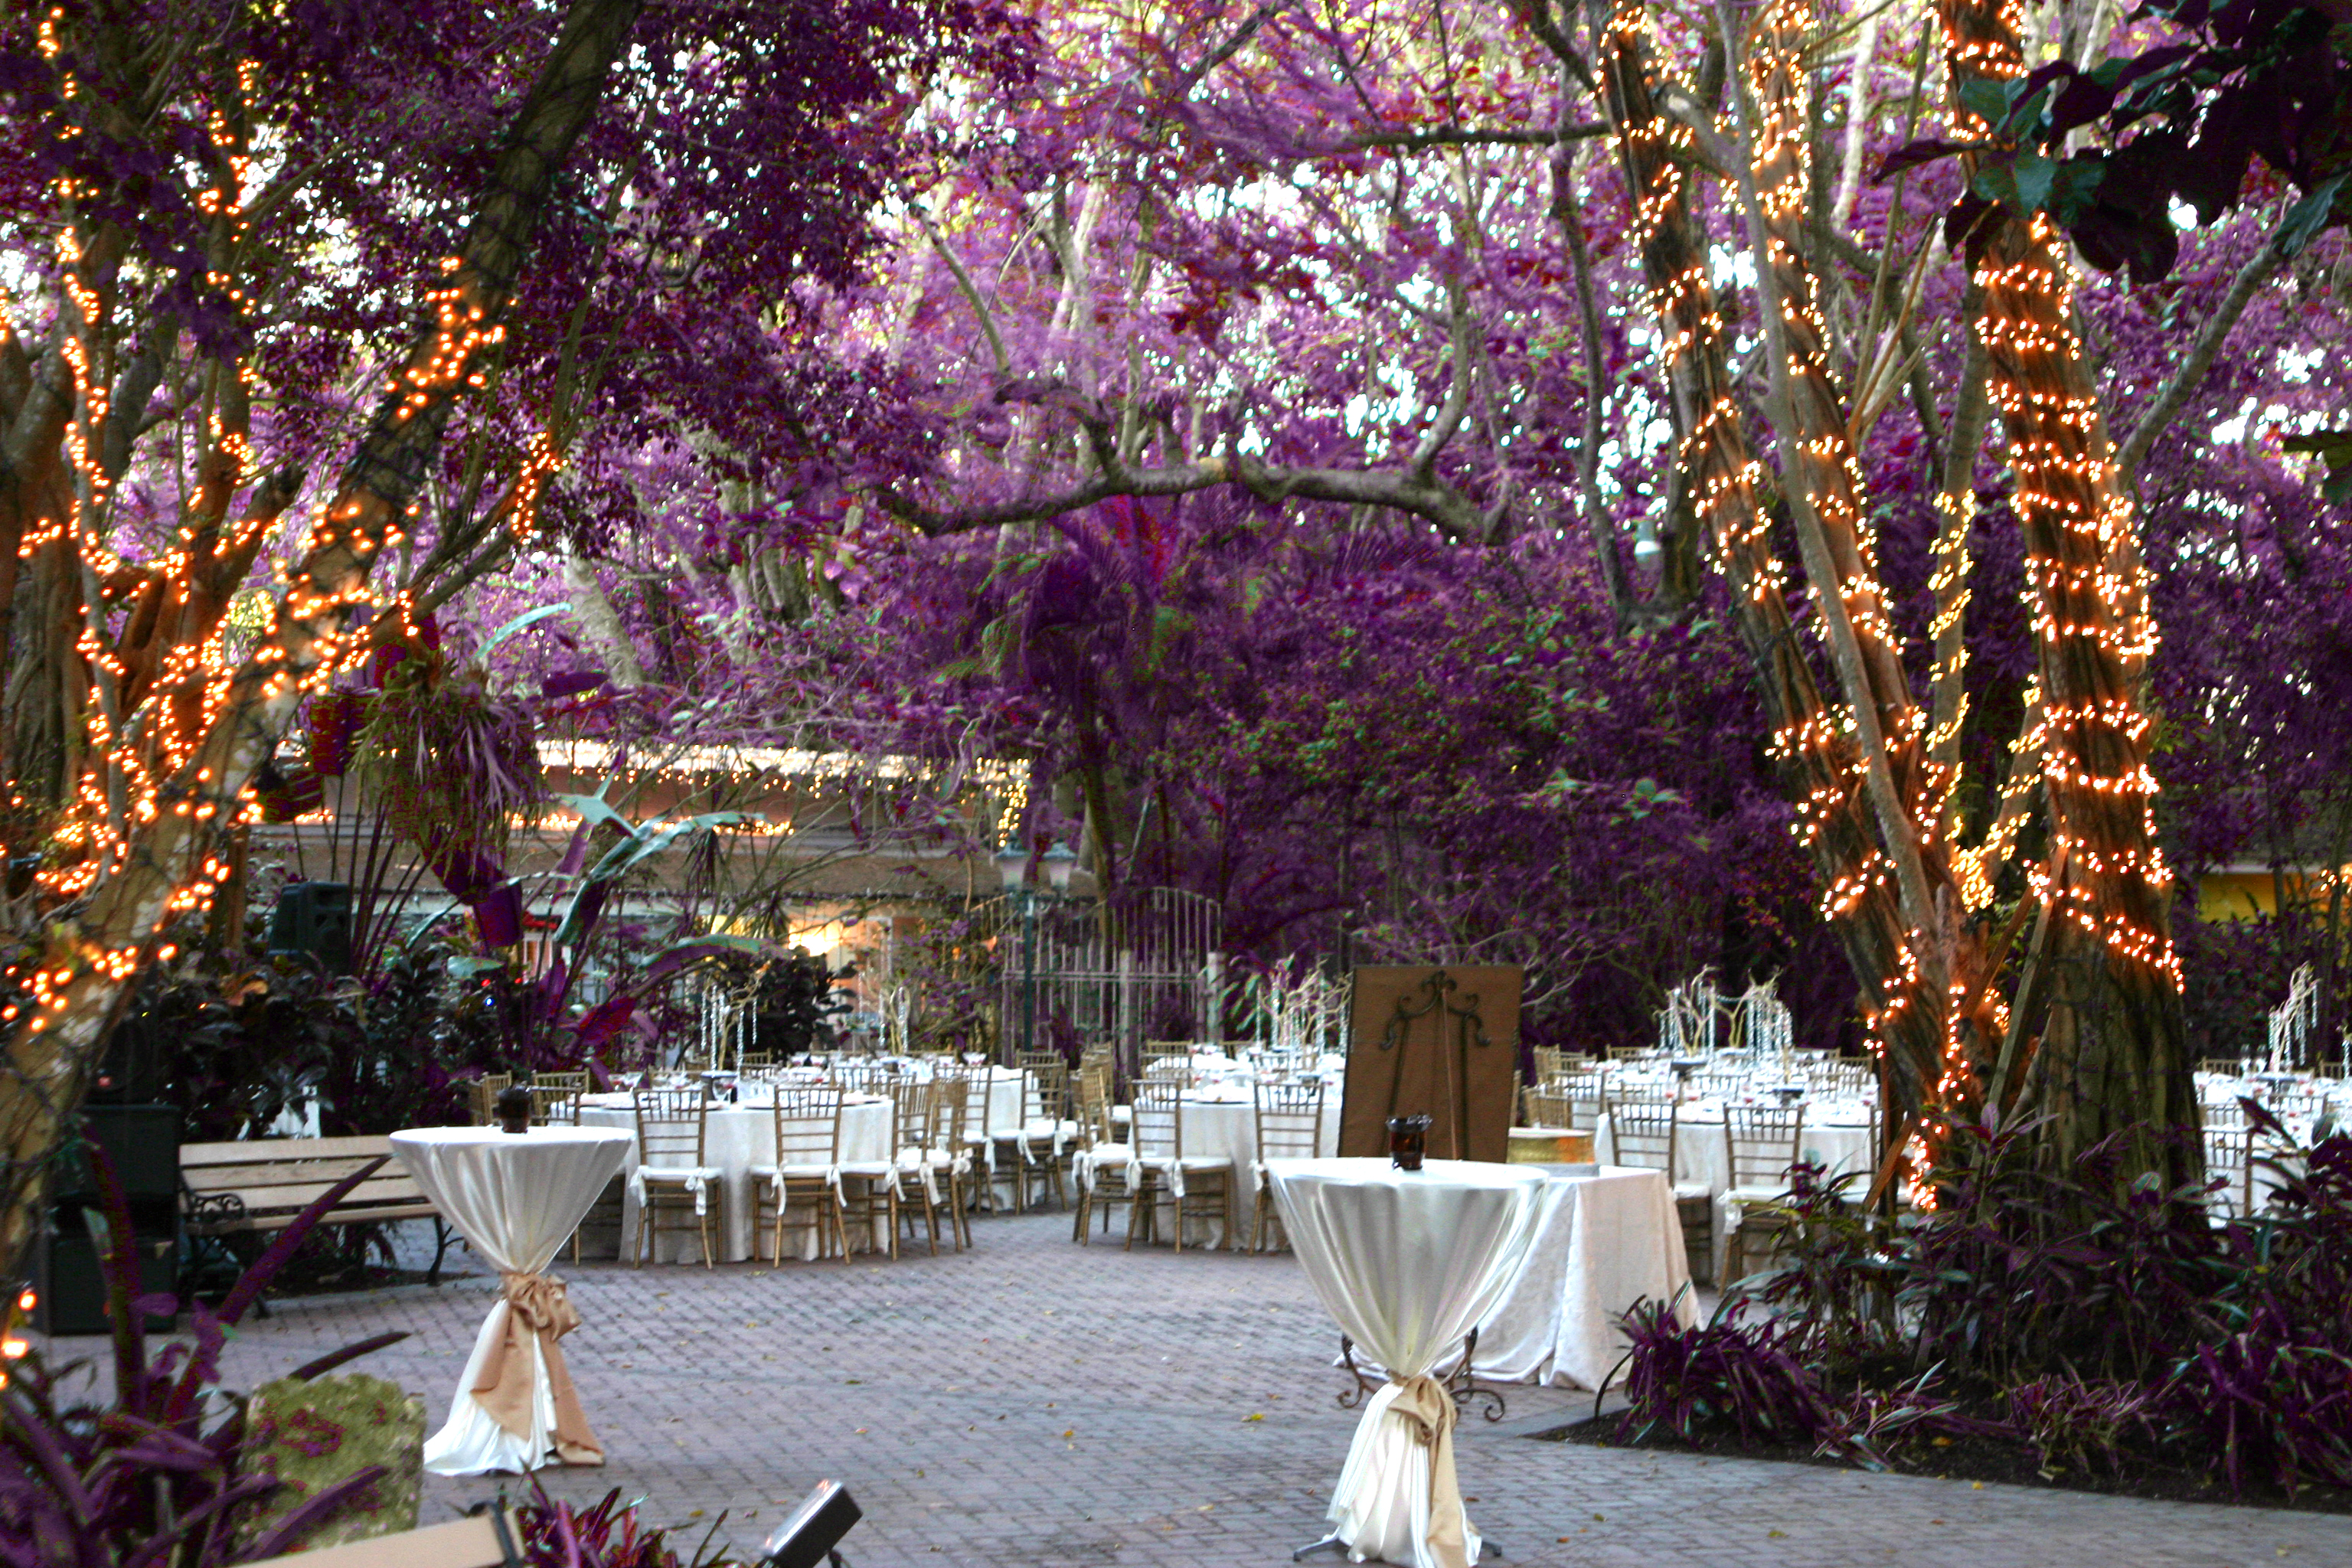 Outdoor Park Or Indoor Room For Wedding Ceremony: 7 South Florida Wedding Venues To Keep On Your Radar